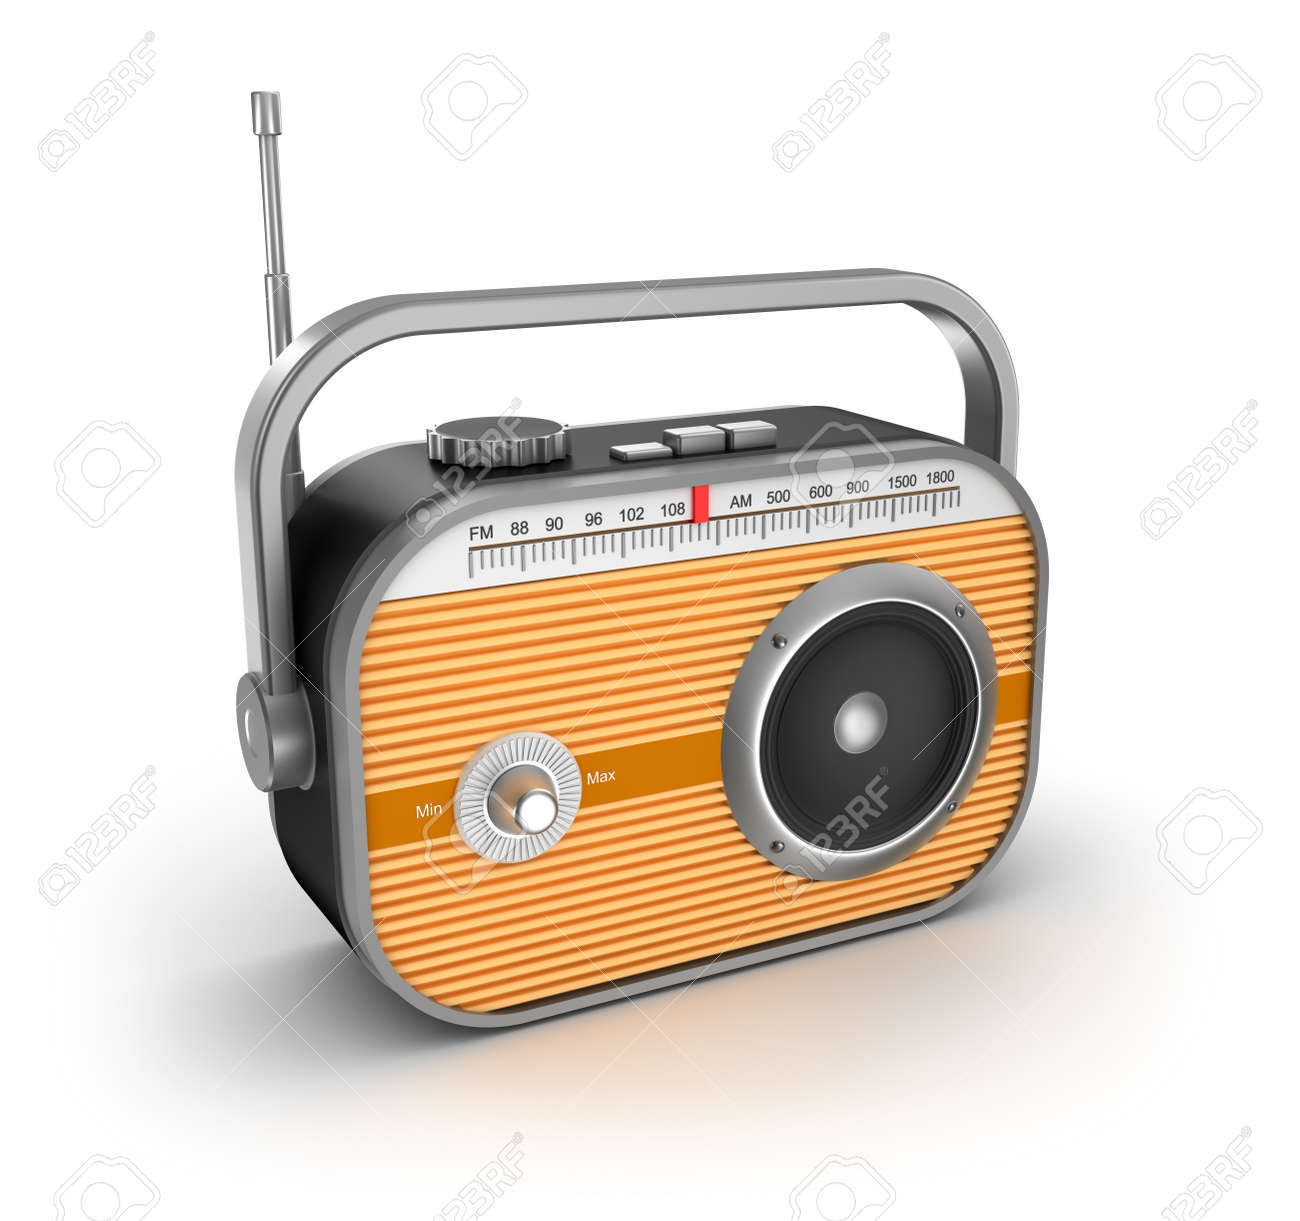 Retro radio on white background Stock Photo - 16798198